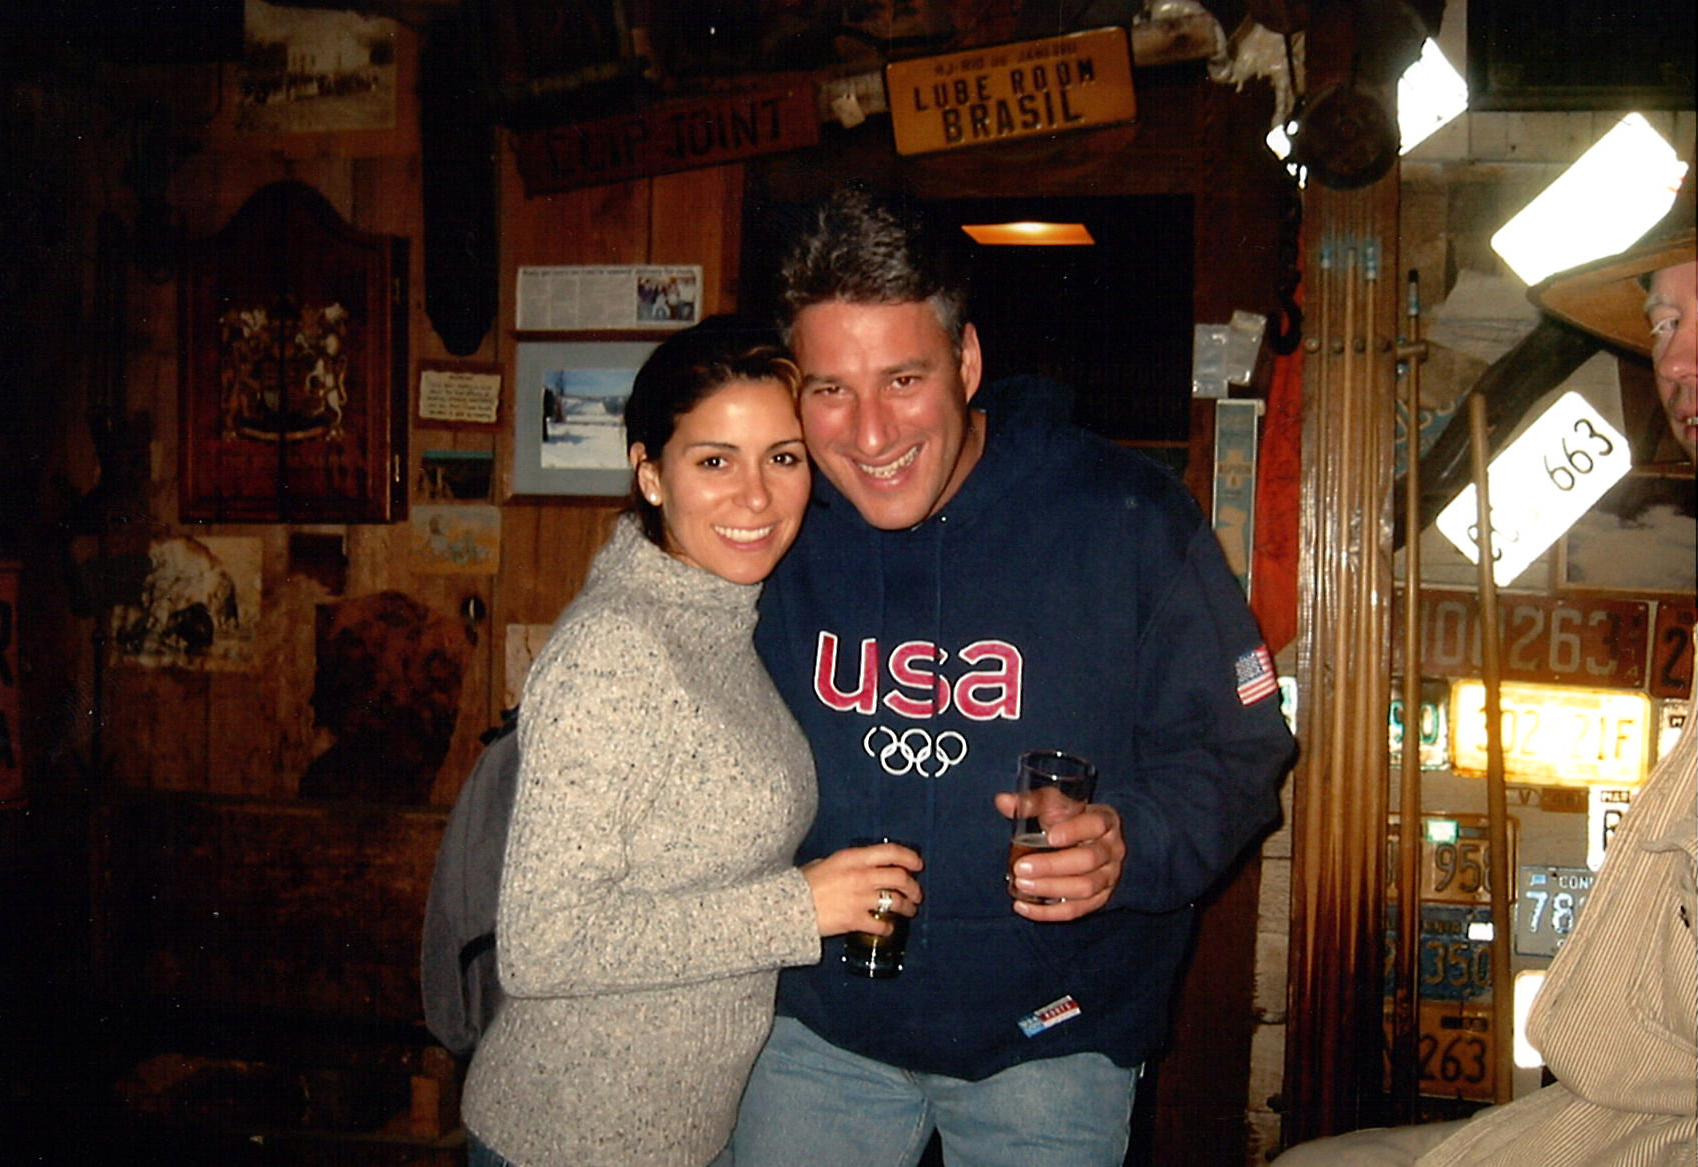 Lori and Tom Lube Room.jpg